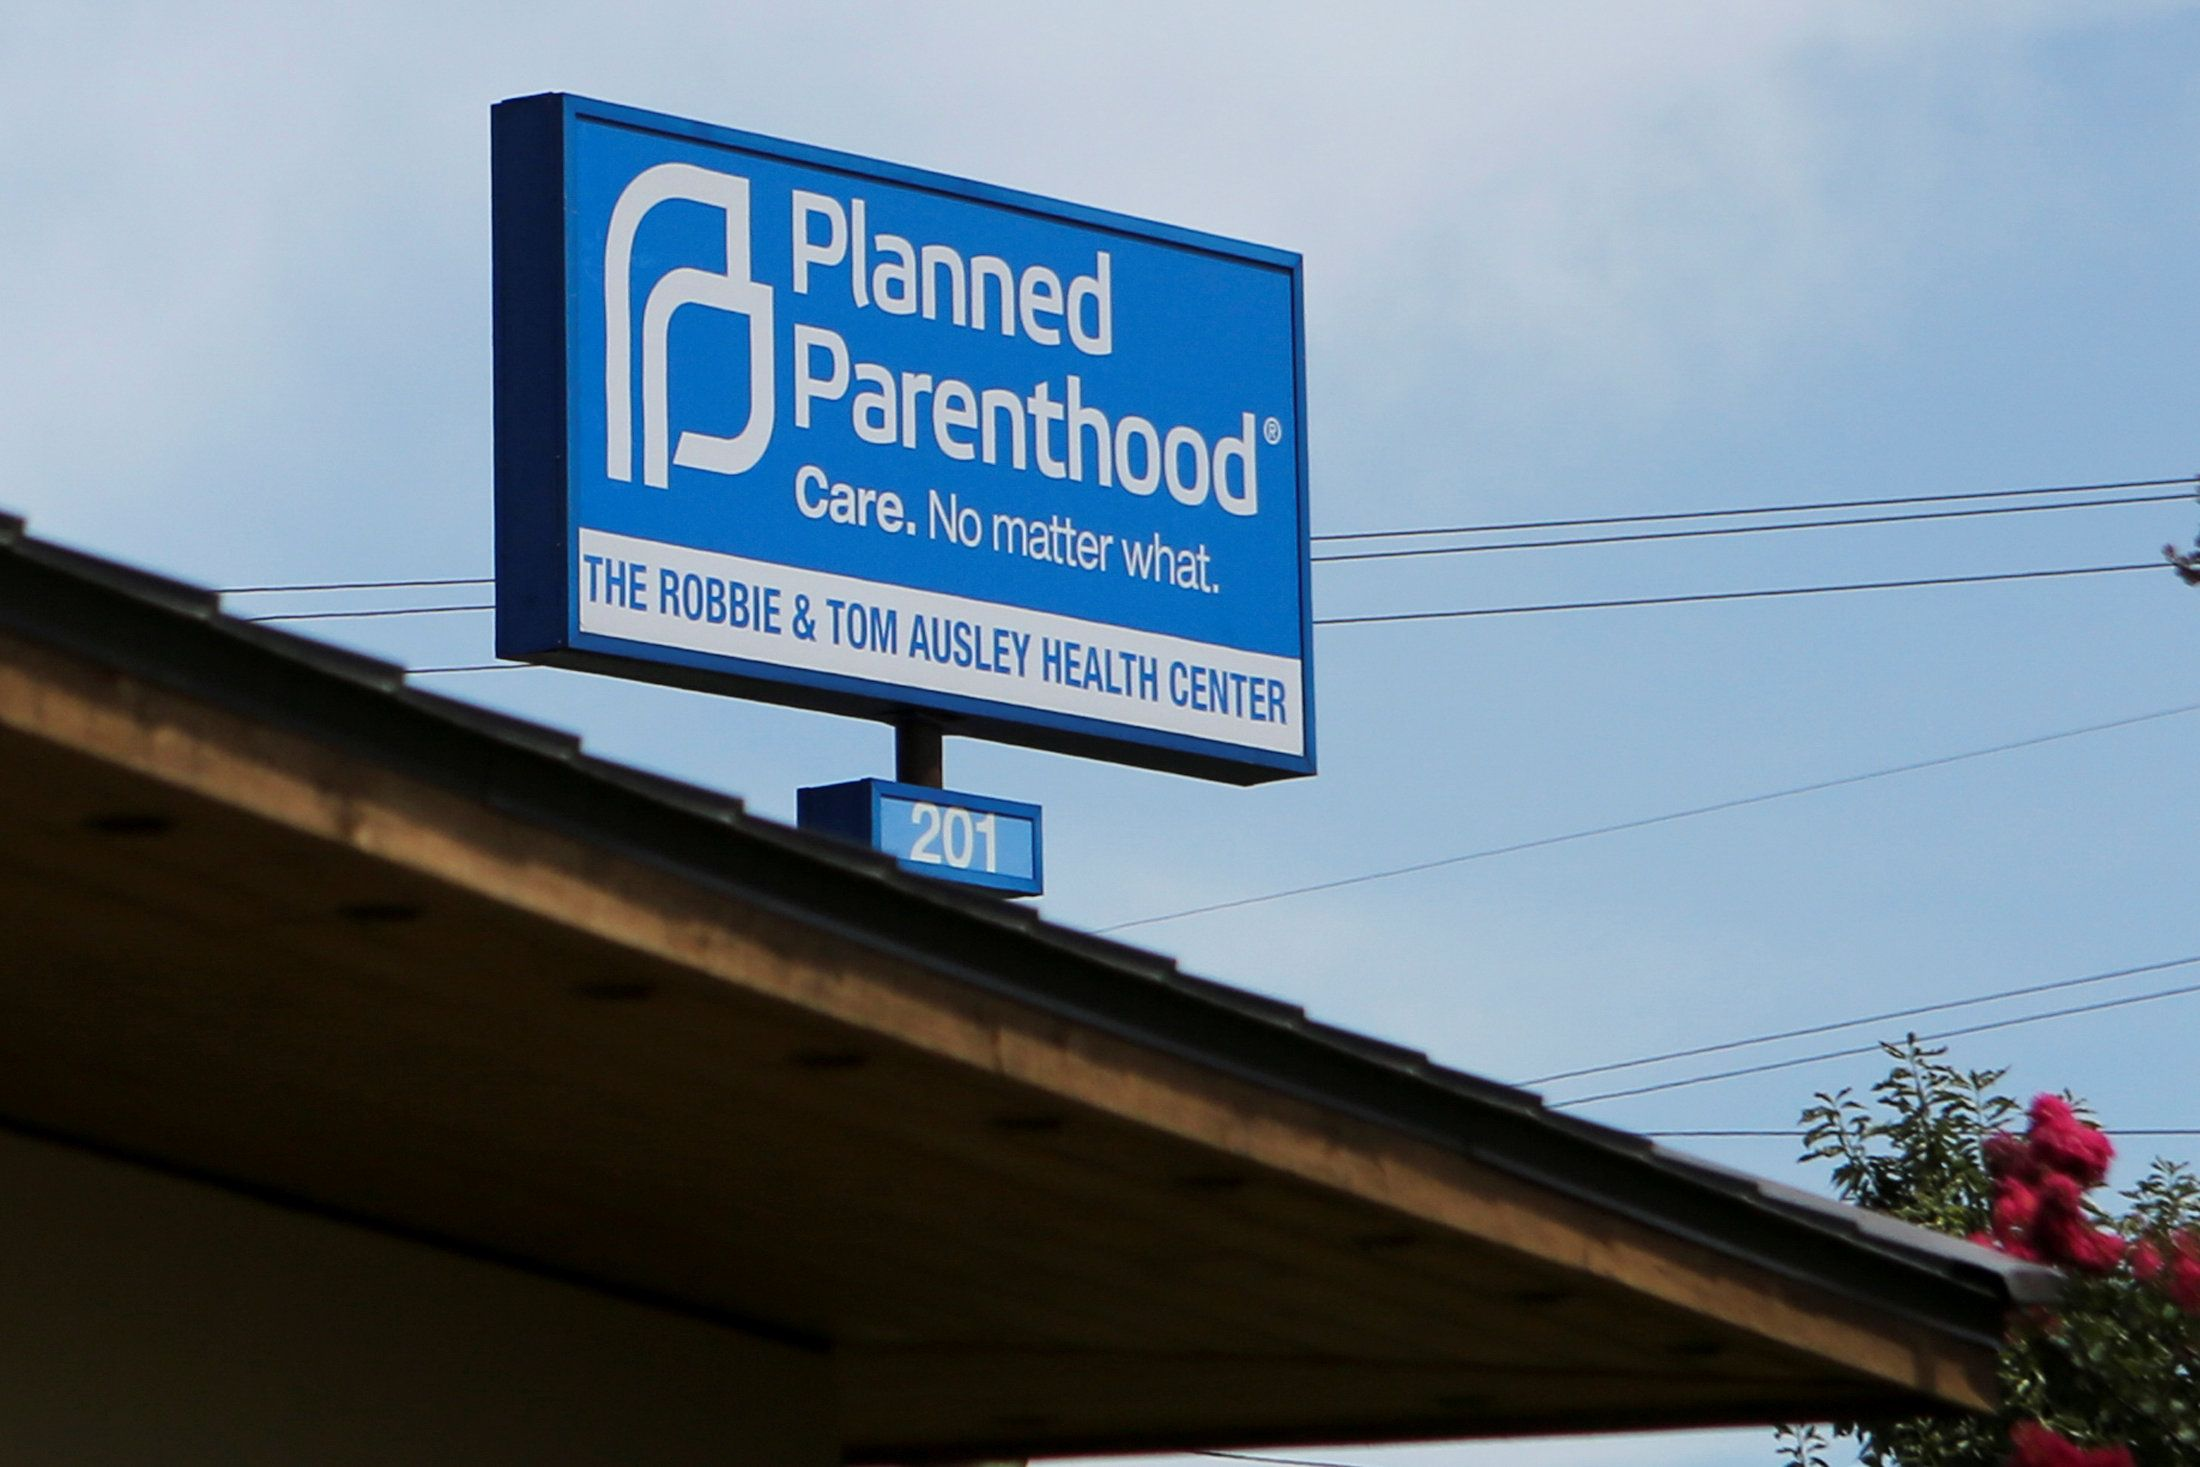 planned_parenthood_healthcare_0323